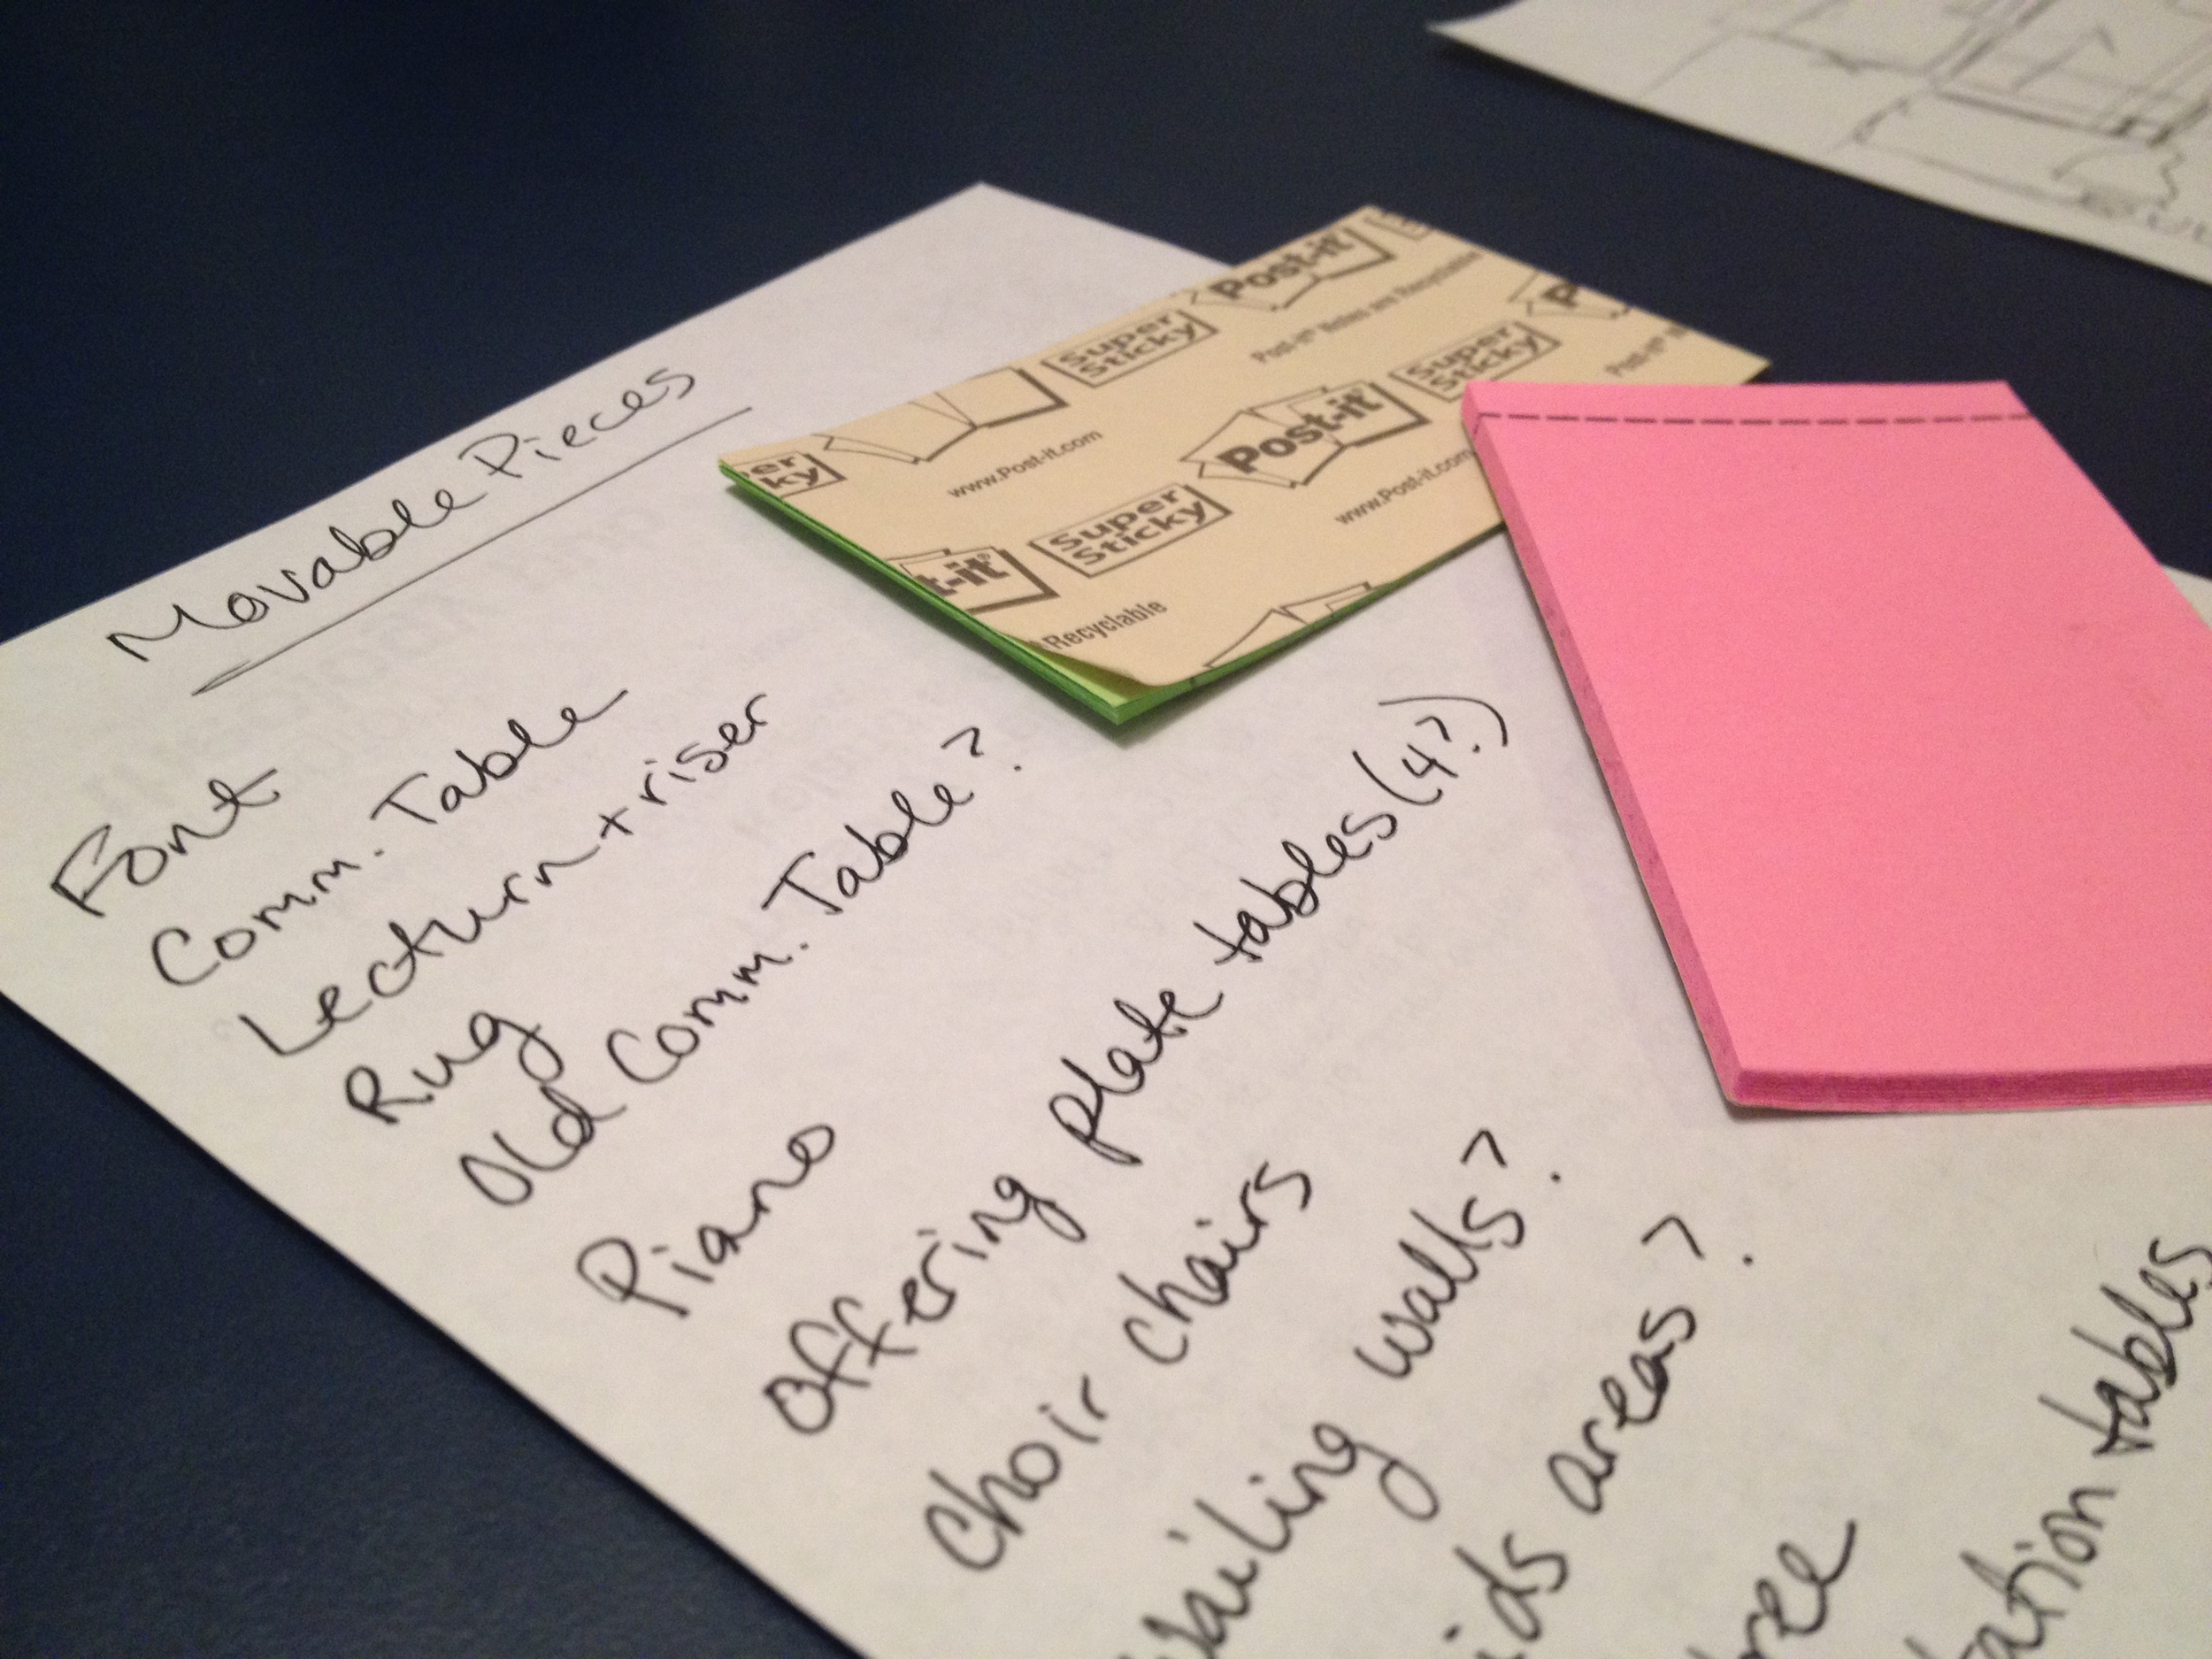 A list of non-permanant items and the Post-It labels used to represent the items.